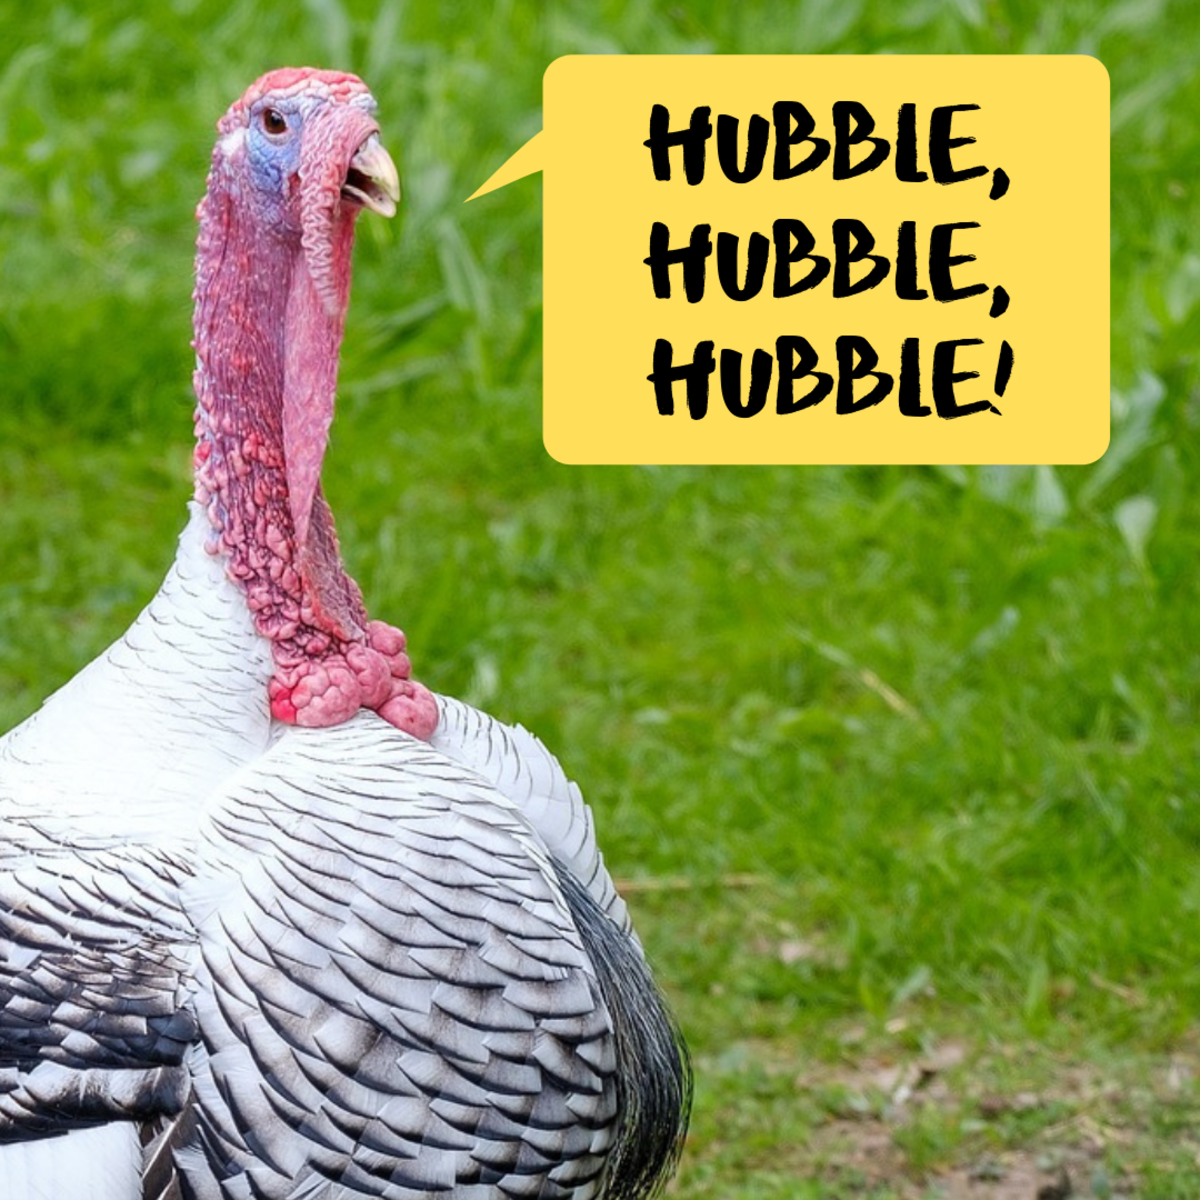 Thanksgiving Knock Knock Jokes And Riddles For Kids Holidappy Celebrations